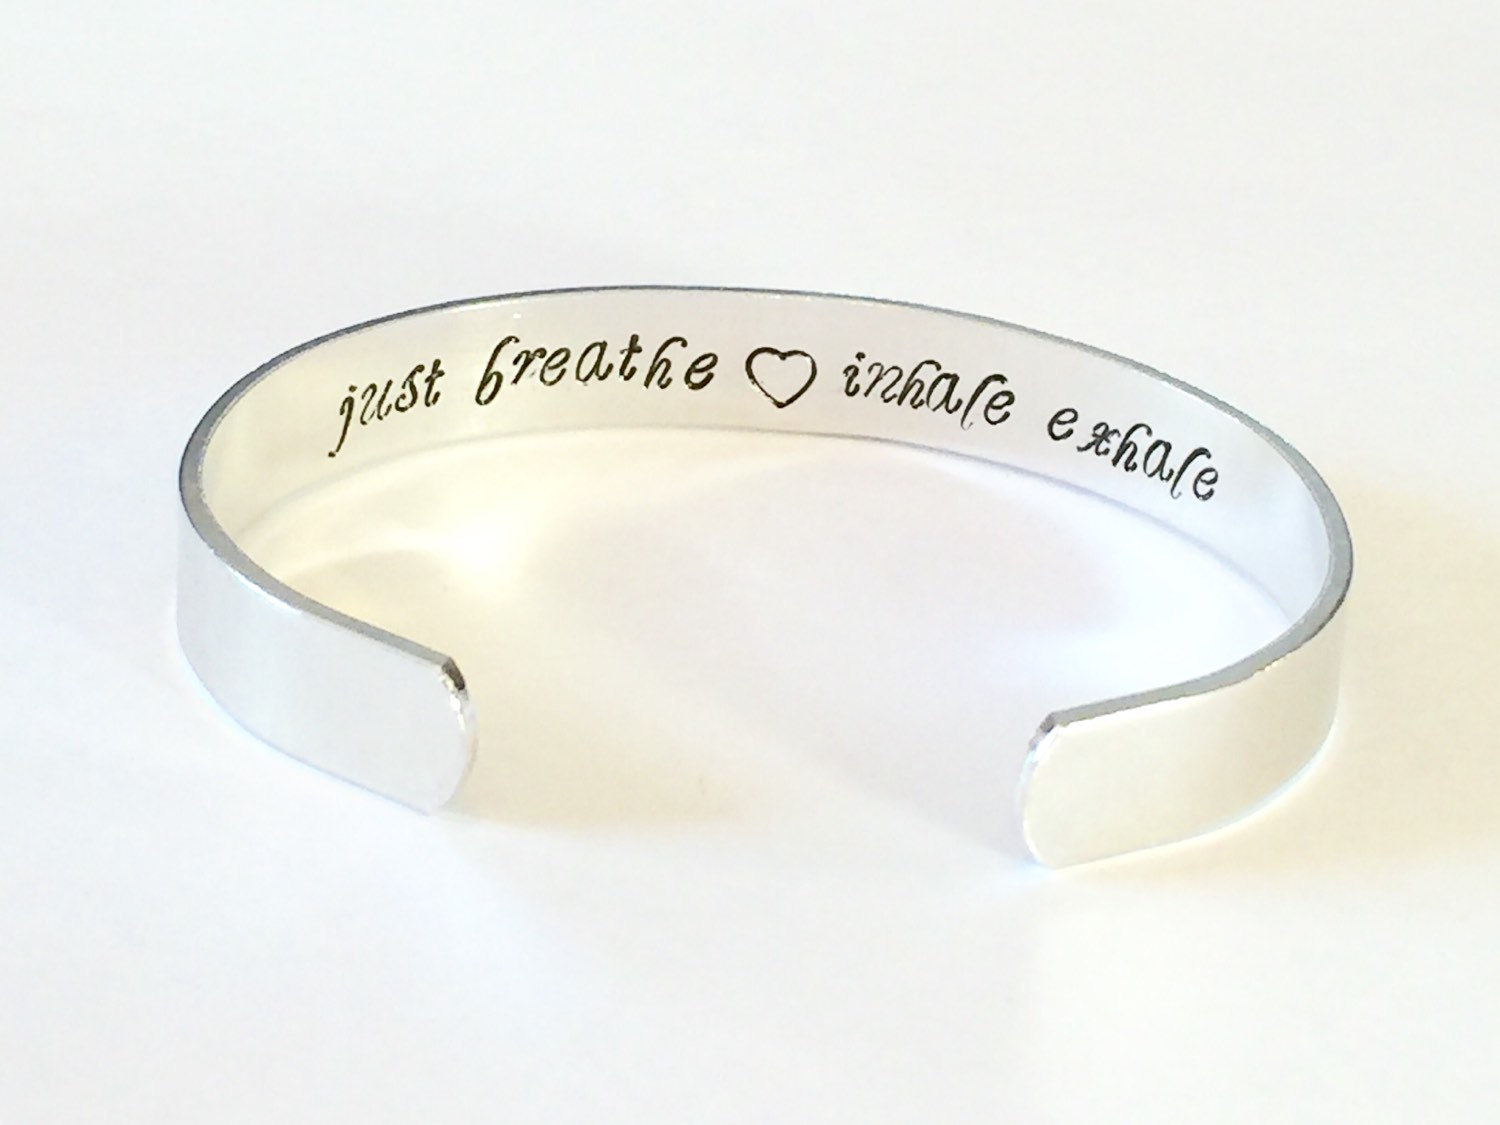 from personalized steel name bracelet aliexpress polished message breathe stainless buy product custom store mantra silver cuff inspirational com bangle